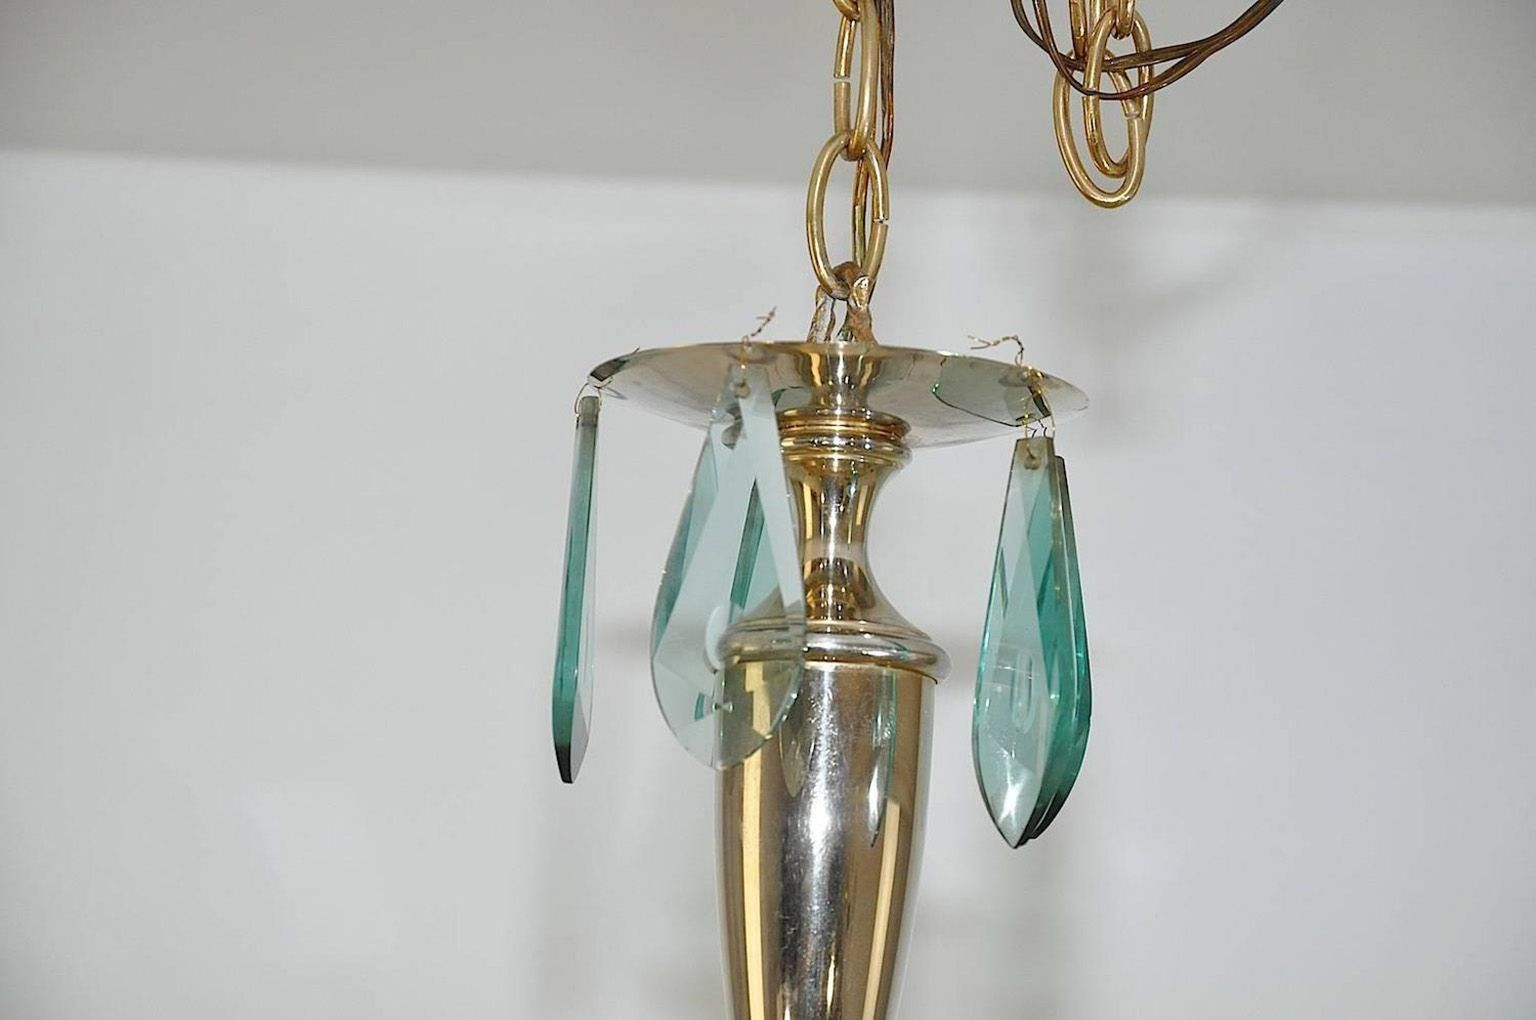 Italian Brass And Glass Chandelier 1950 For Sale At Pamono